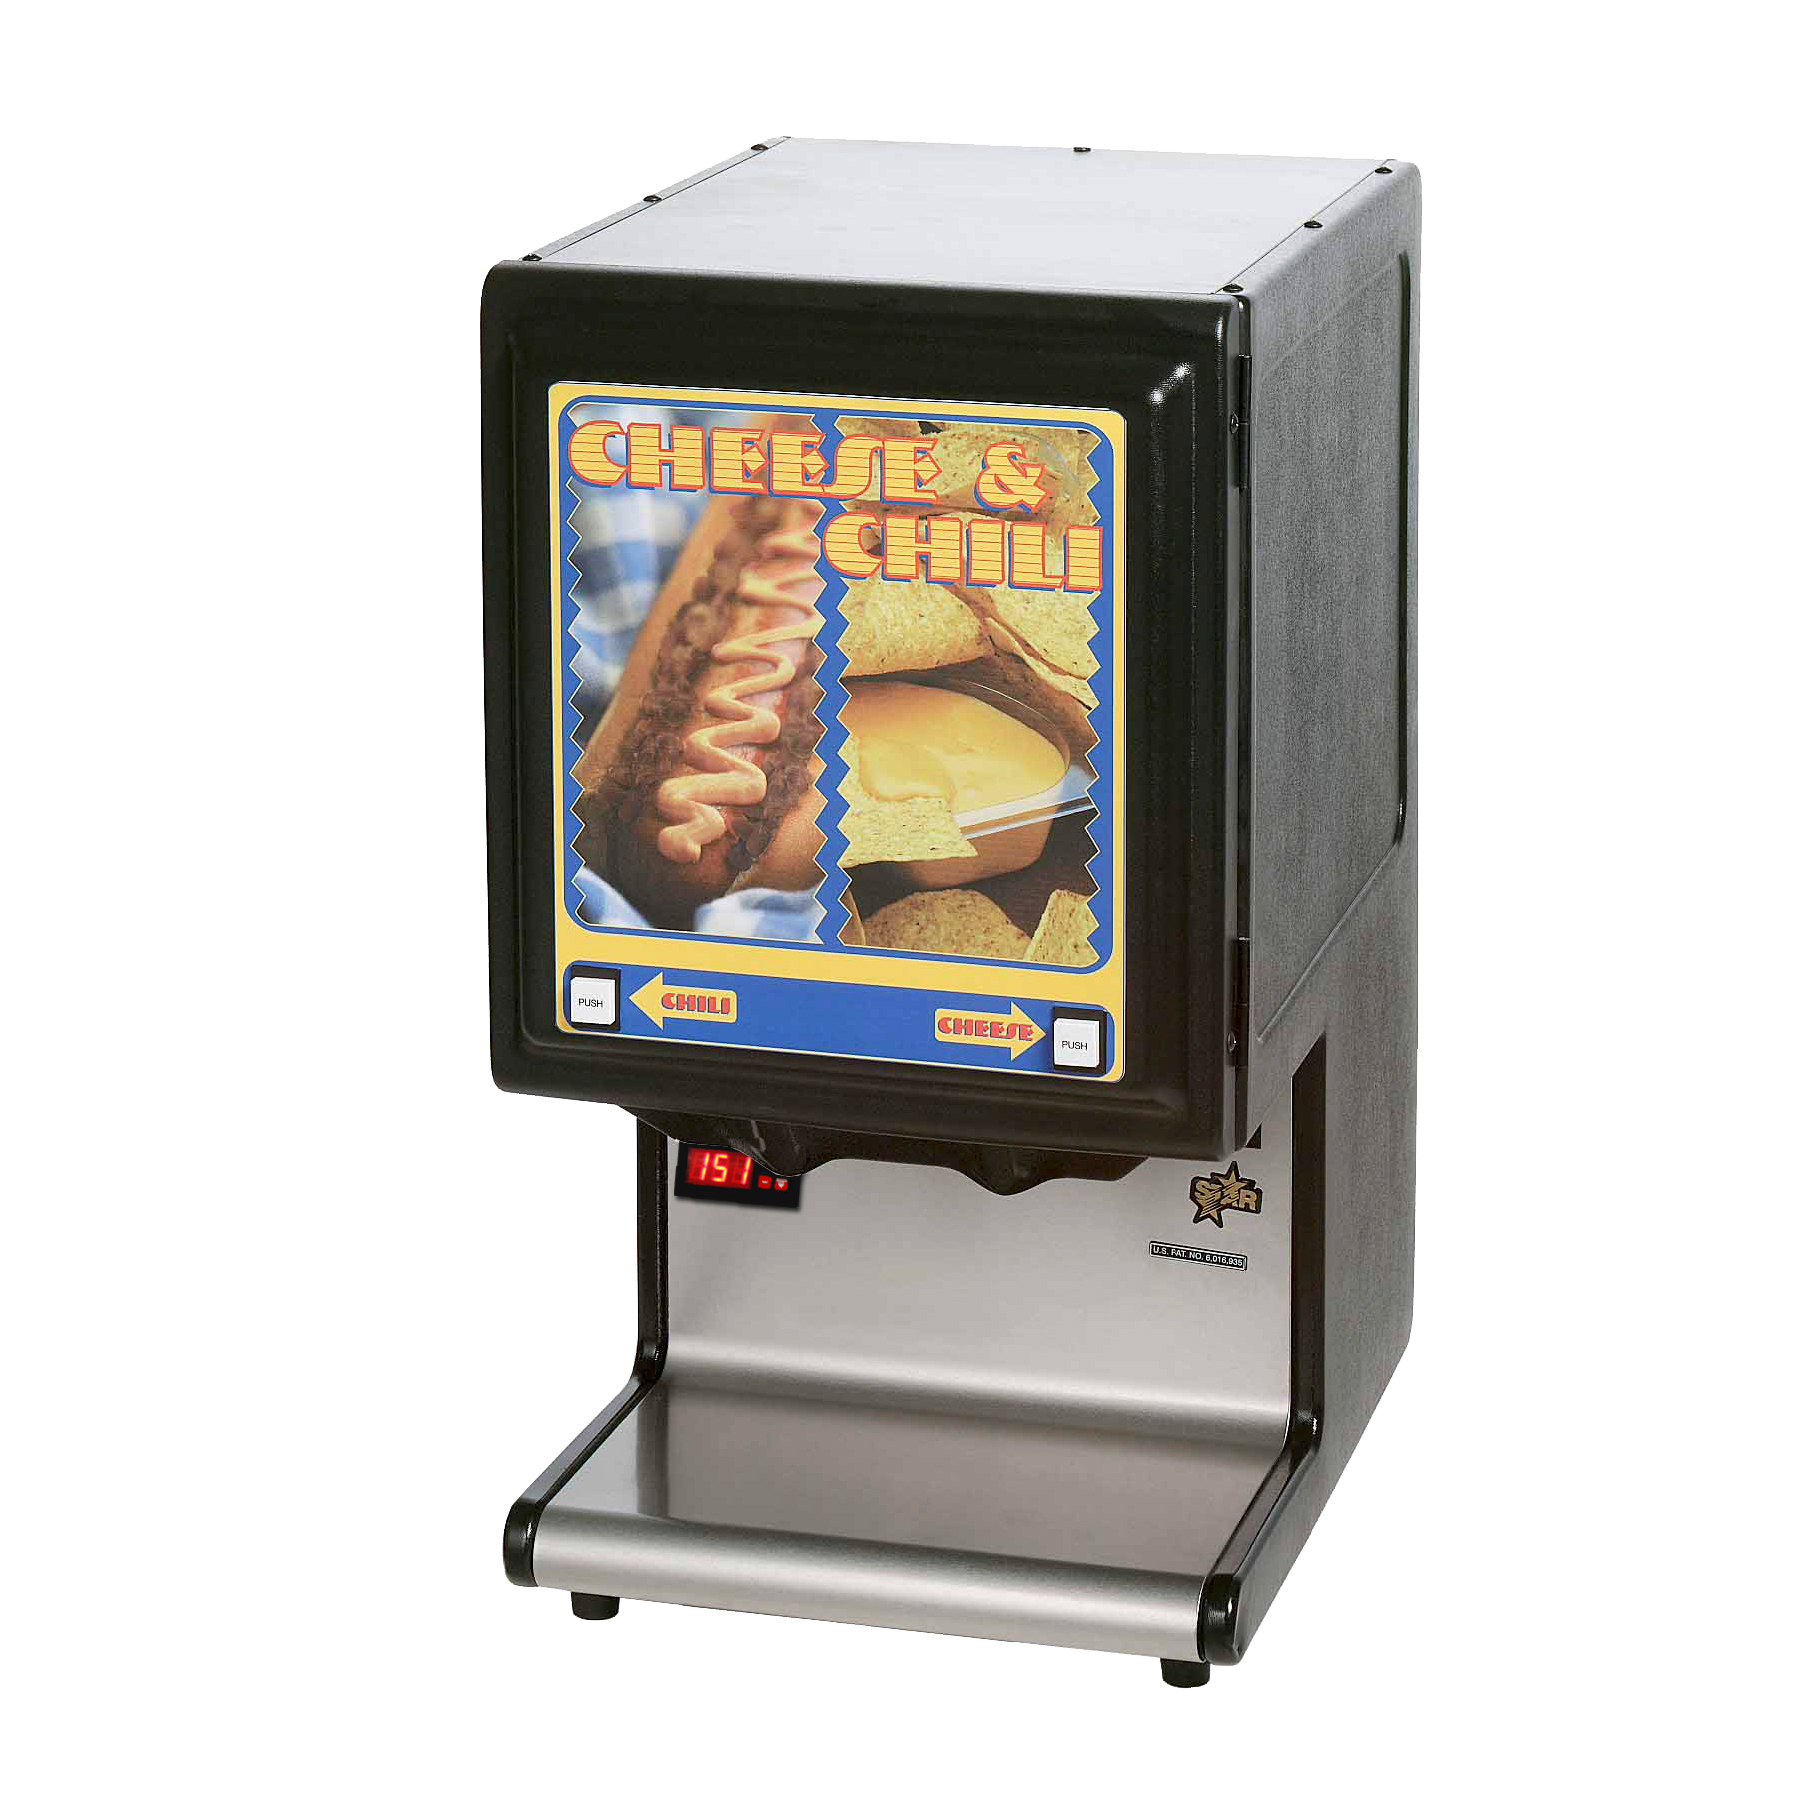 Star HPDE2HP hot food dispenser